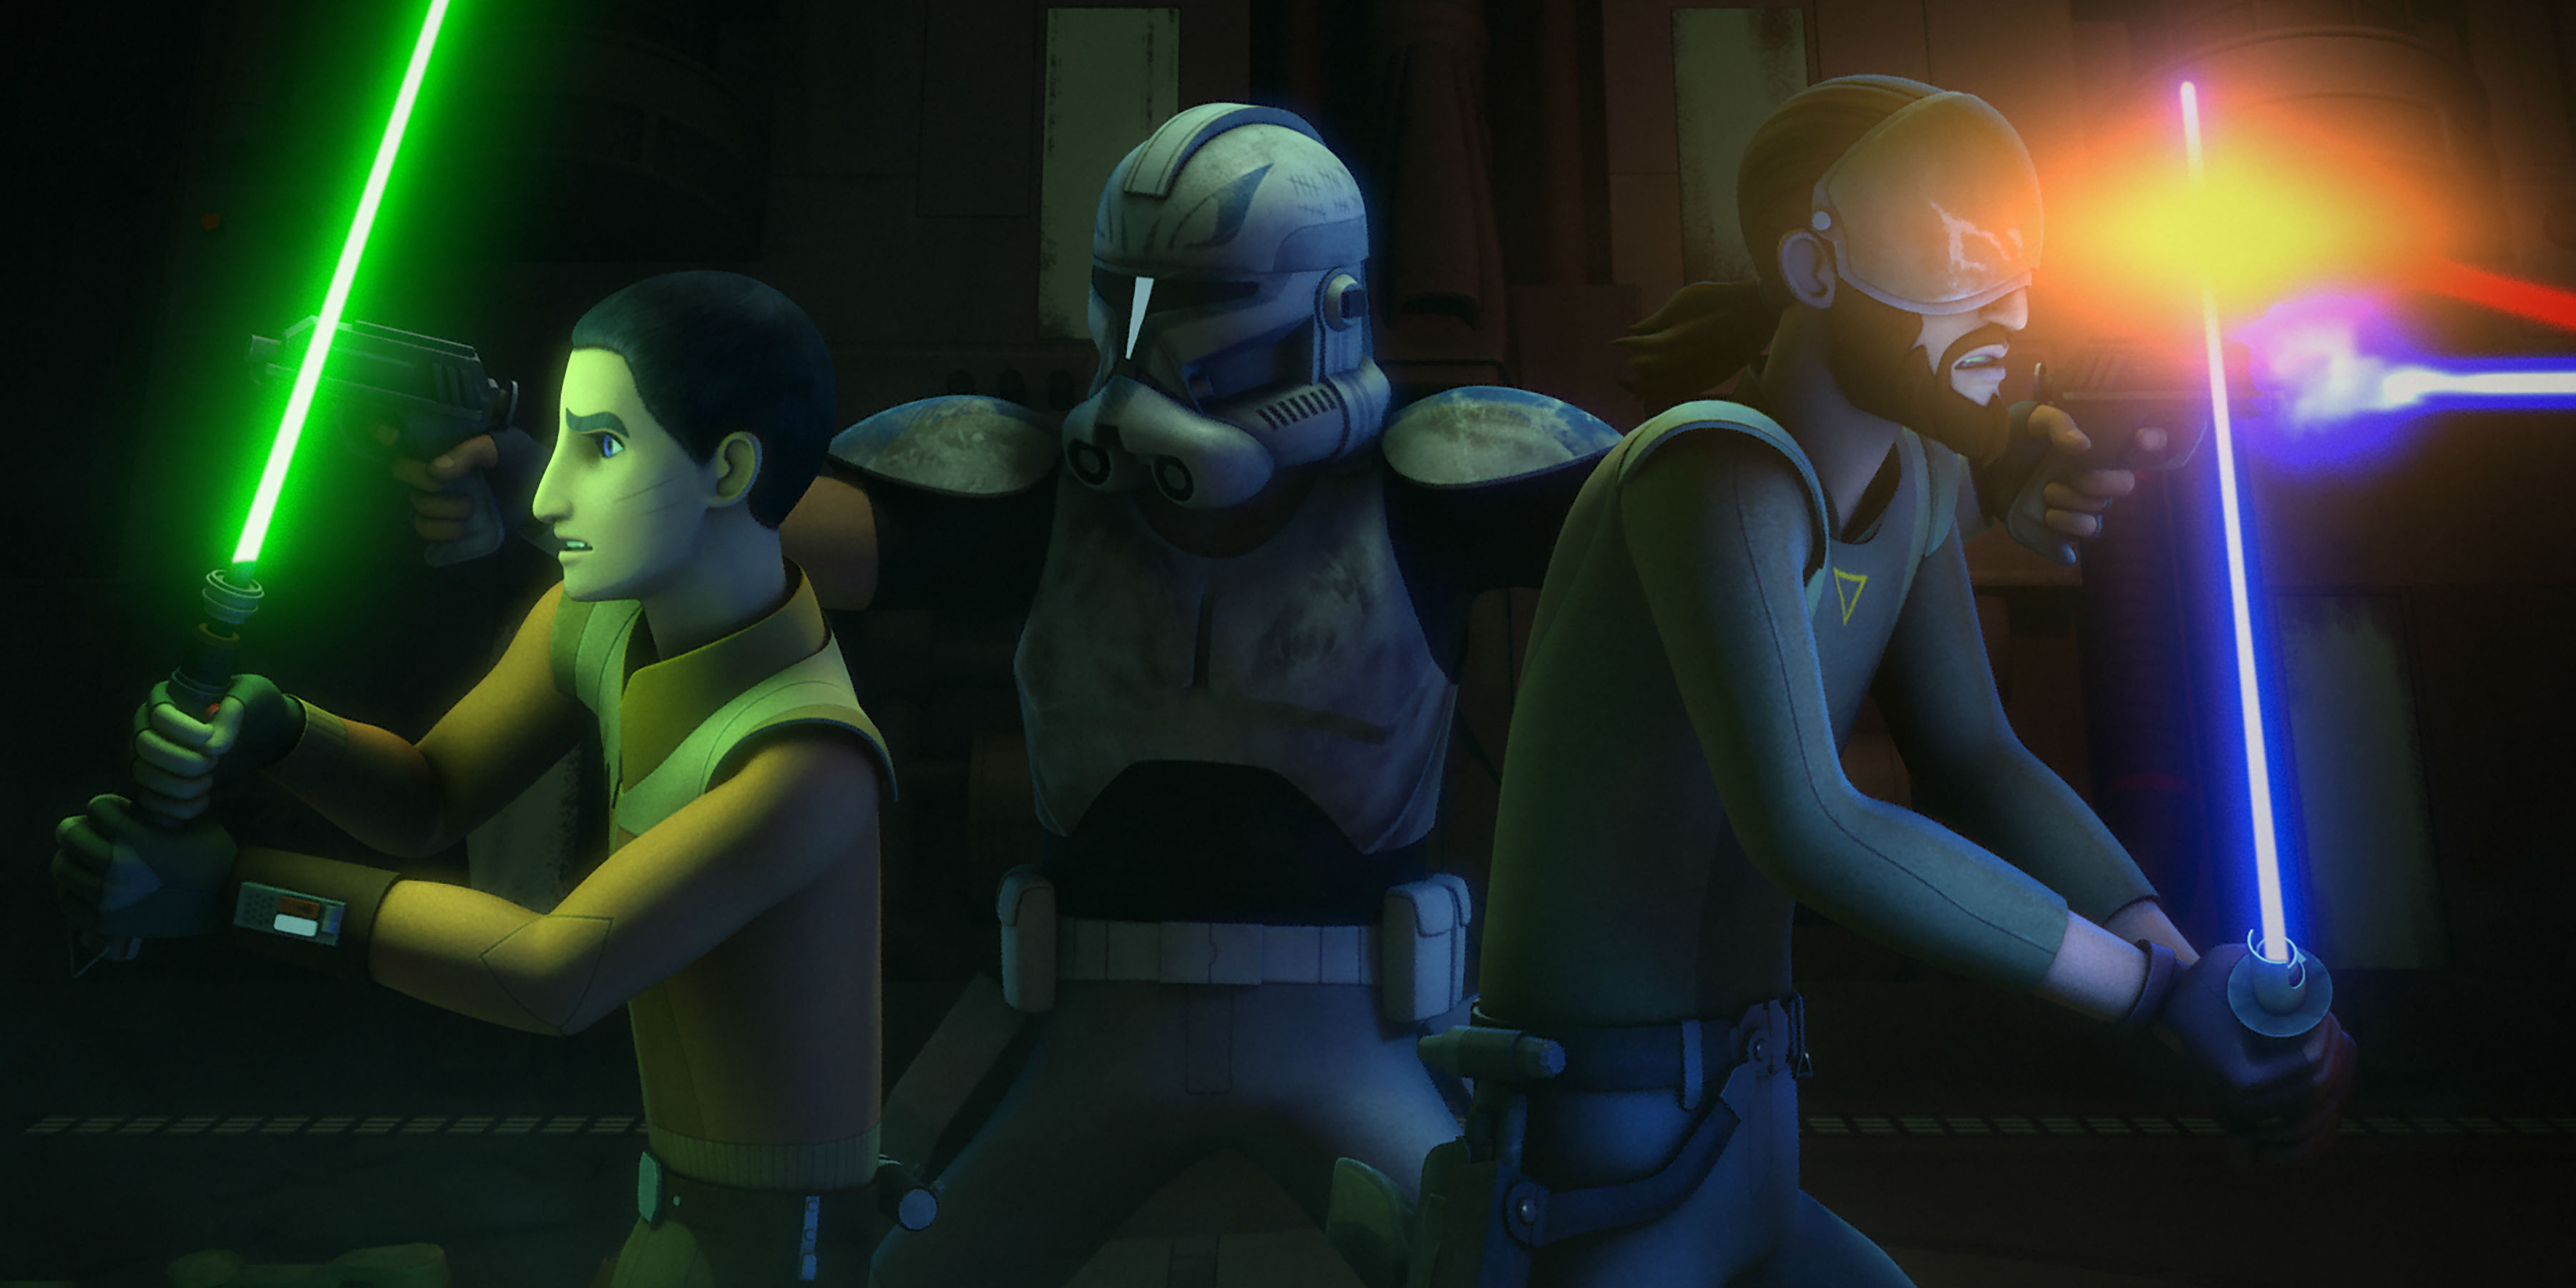 Star Wars Rebels: Where is Phoenix Squadron in the Original